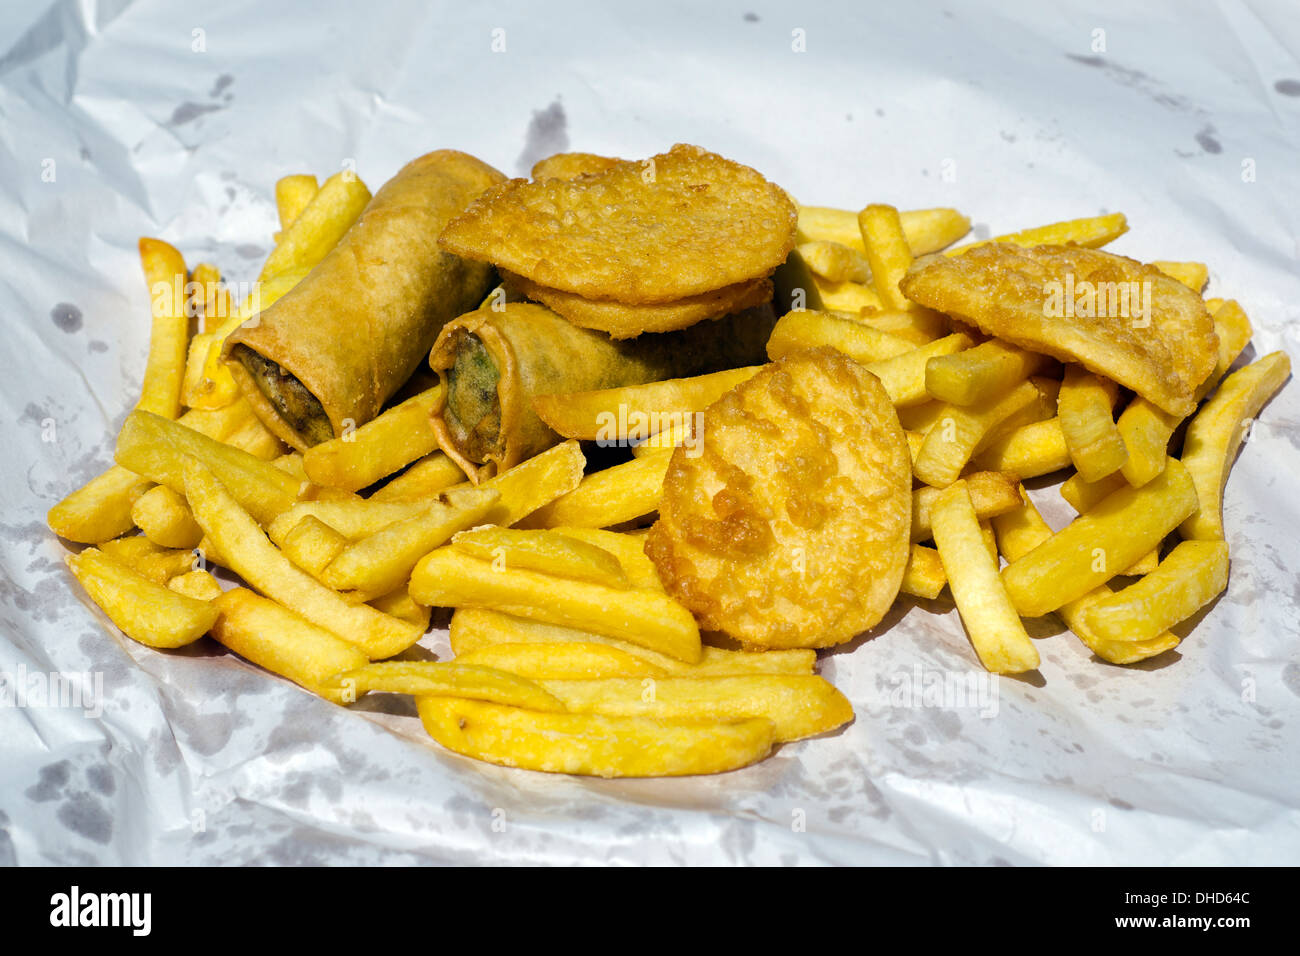 Chips potato, fritters and spring rolls fast food takeaway meal dish outdoor. Stock Photo